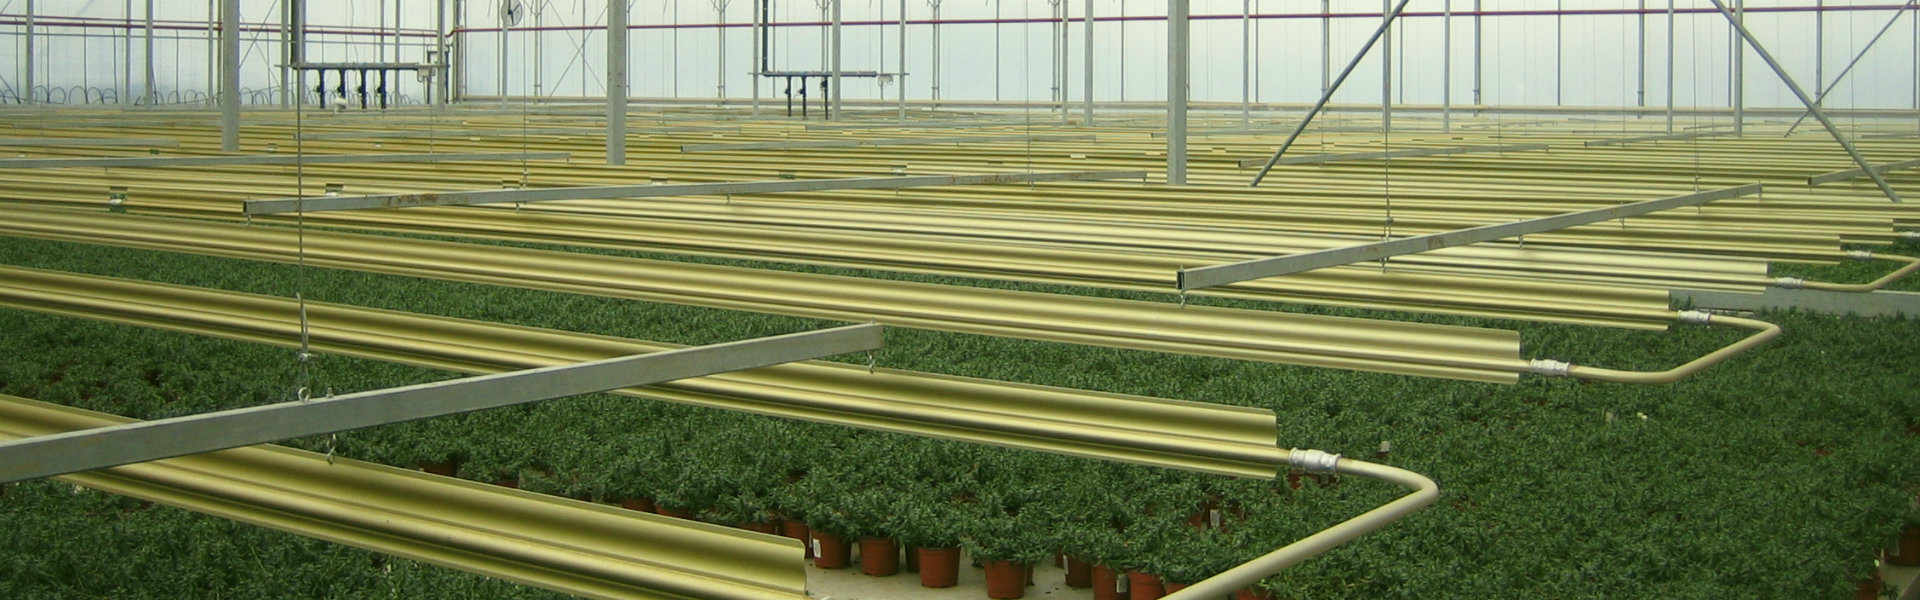 Greenhouse heating system | Alcomij banner